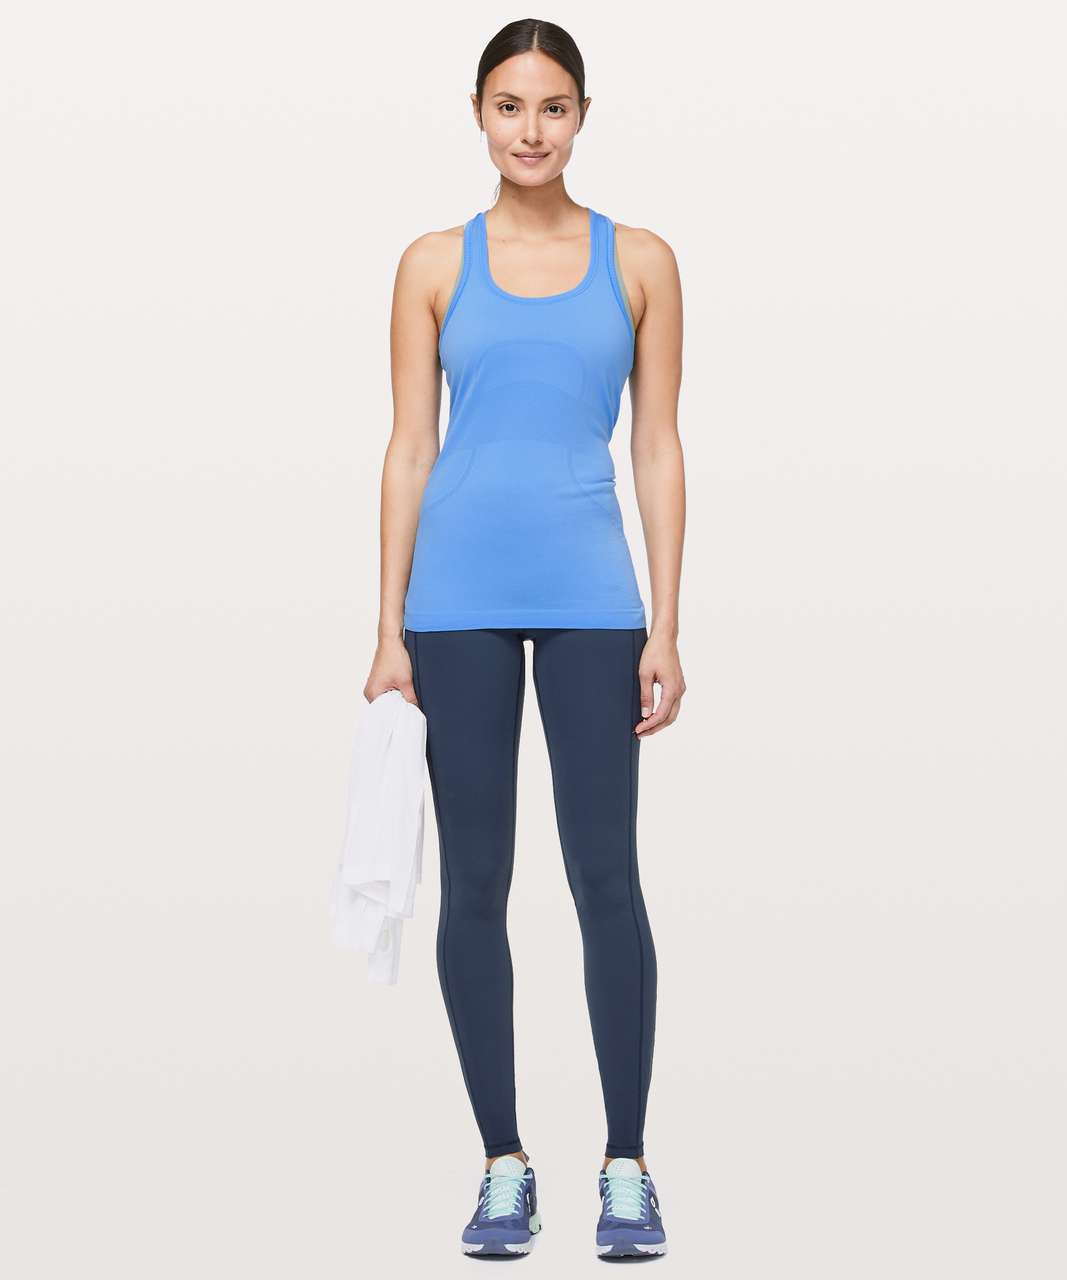 Lululemon Swiftly Tech Racerback - Brisk Blue / Brisk Blue